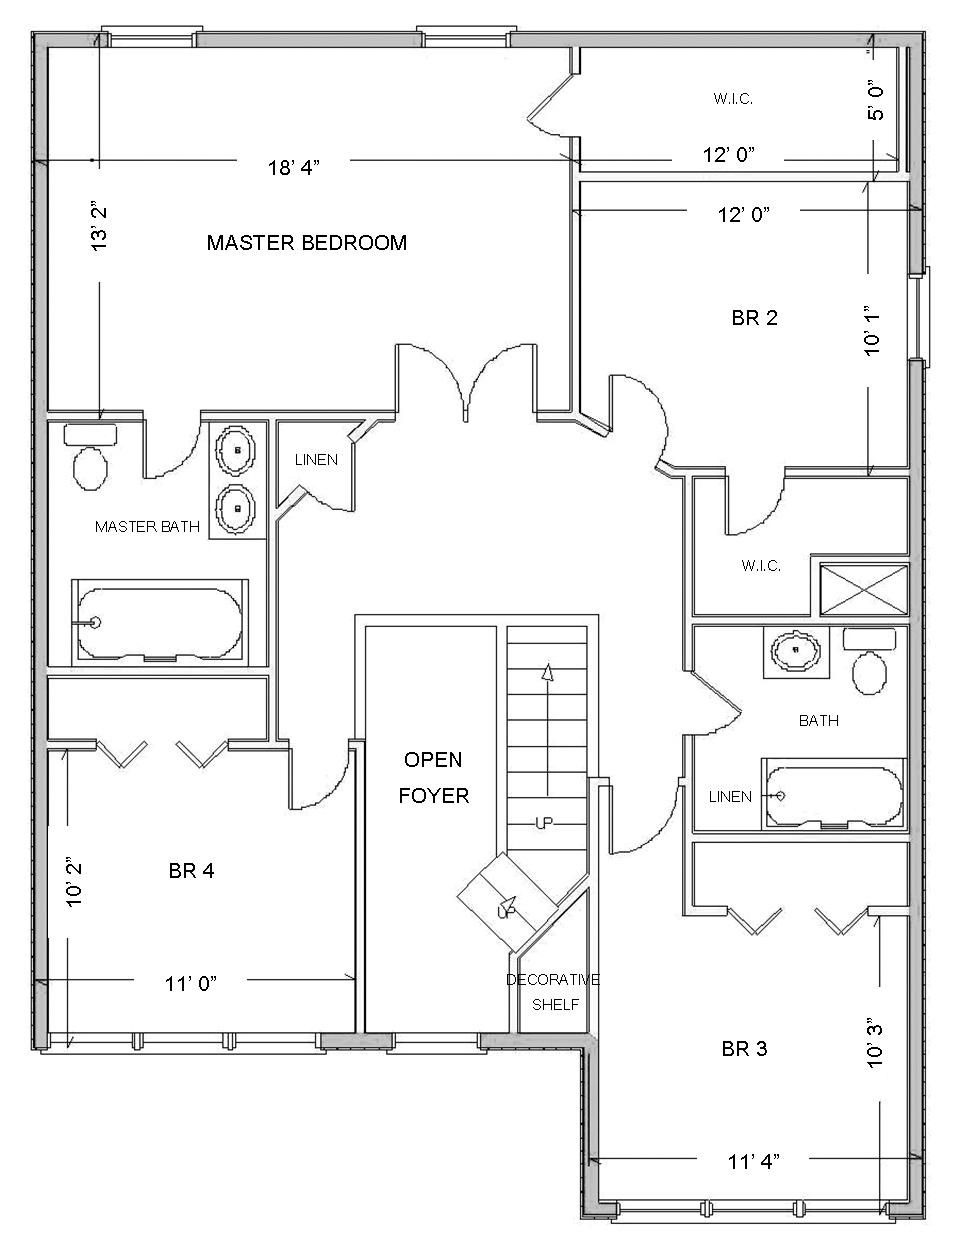 House Floor Plan Maker Awesome Digital Smart Draw Floor Plan with Smartdraw software with